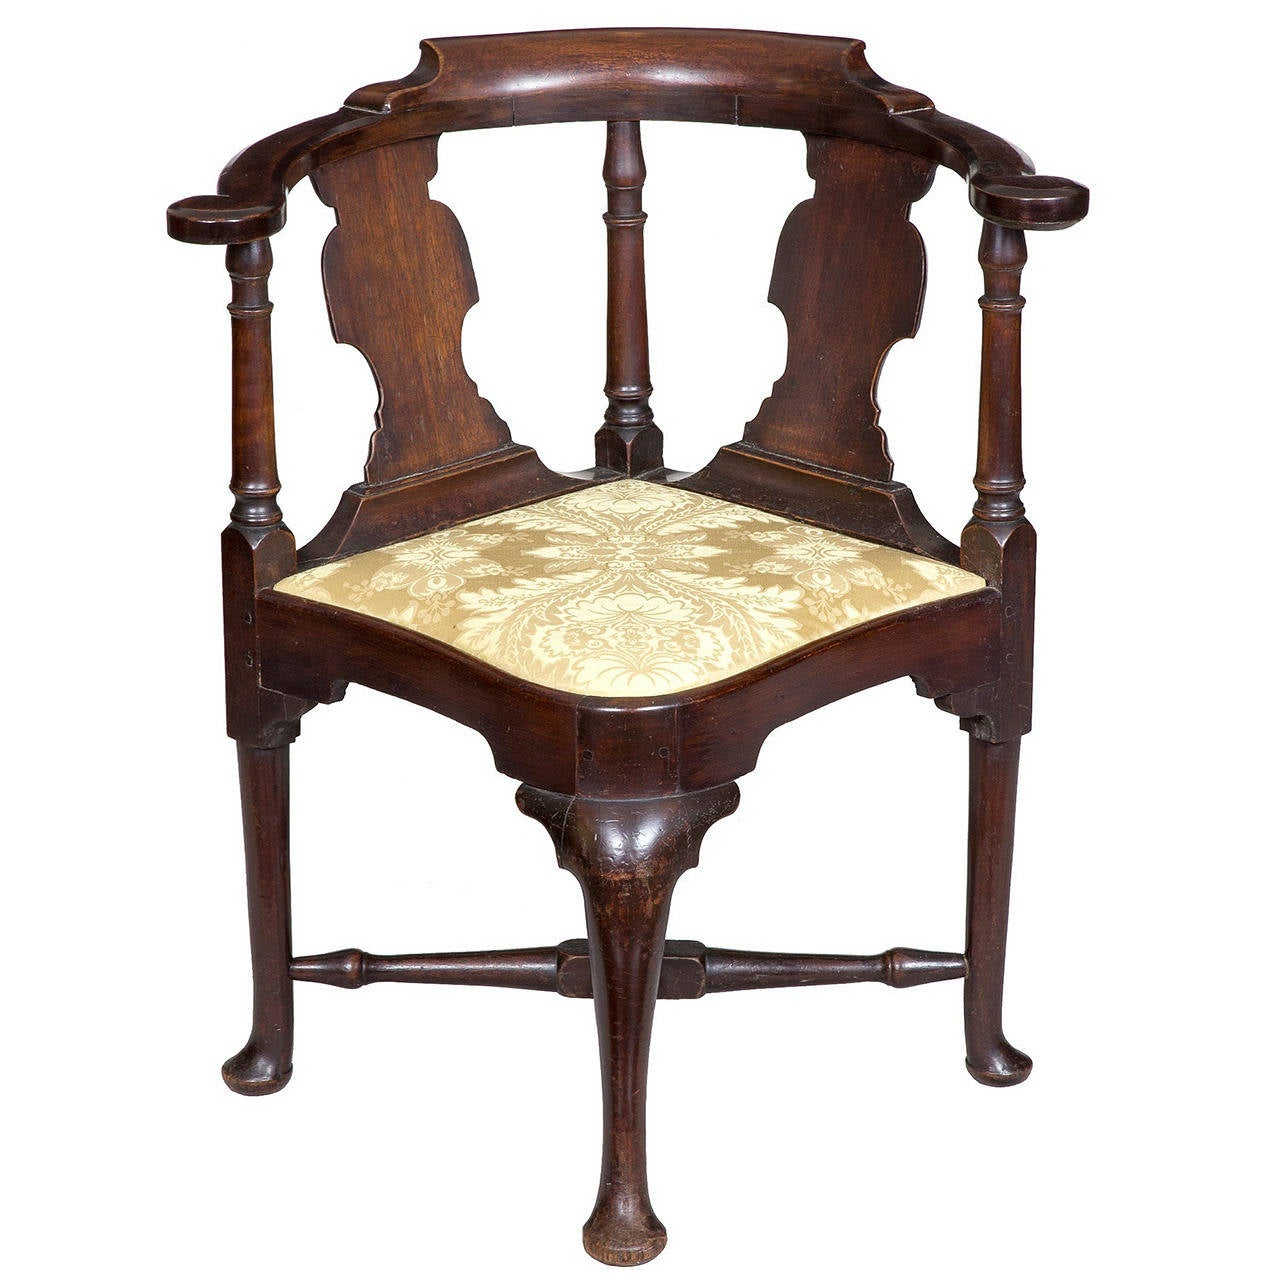 antique queen anne chair swing pakistan mahogany corner with horseshoe seat